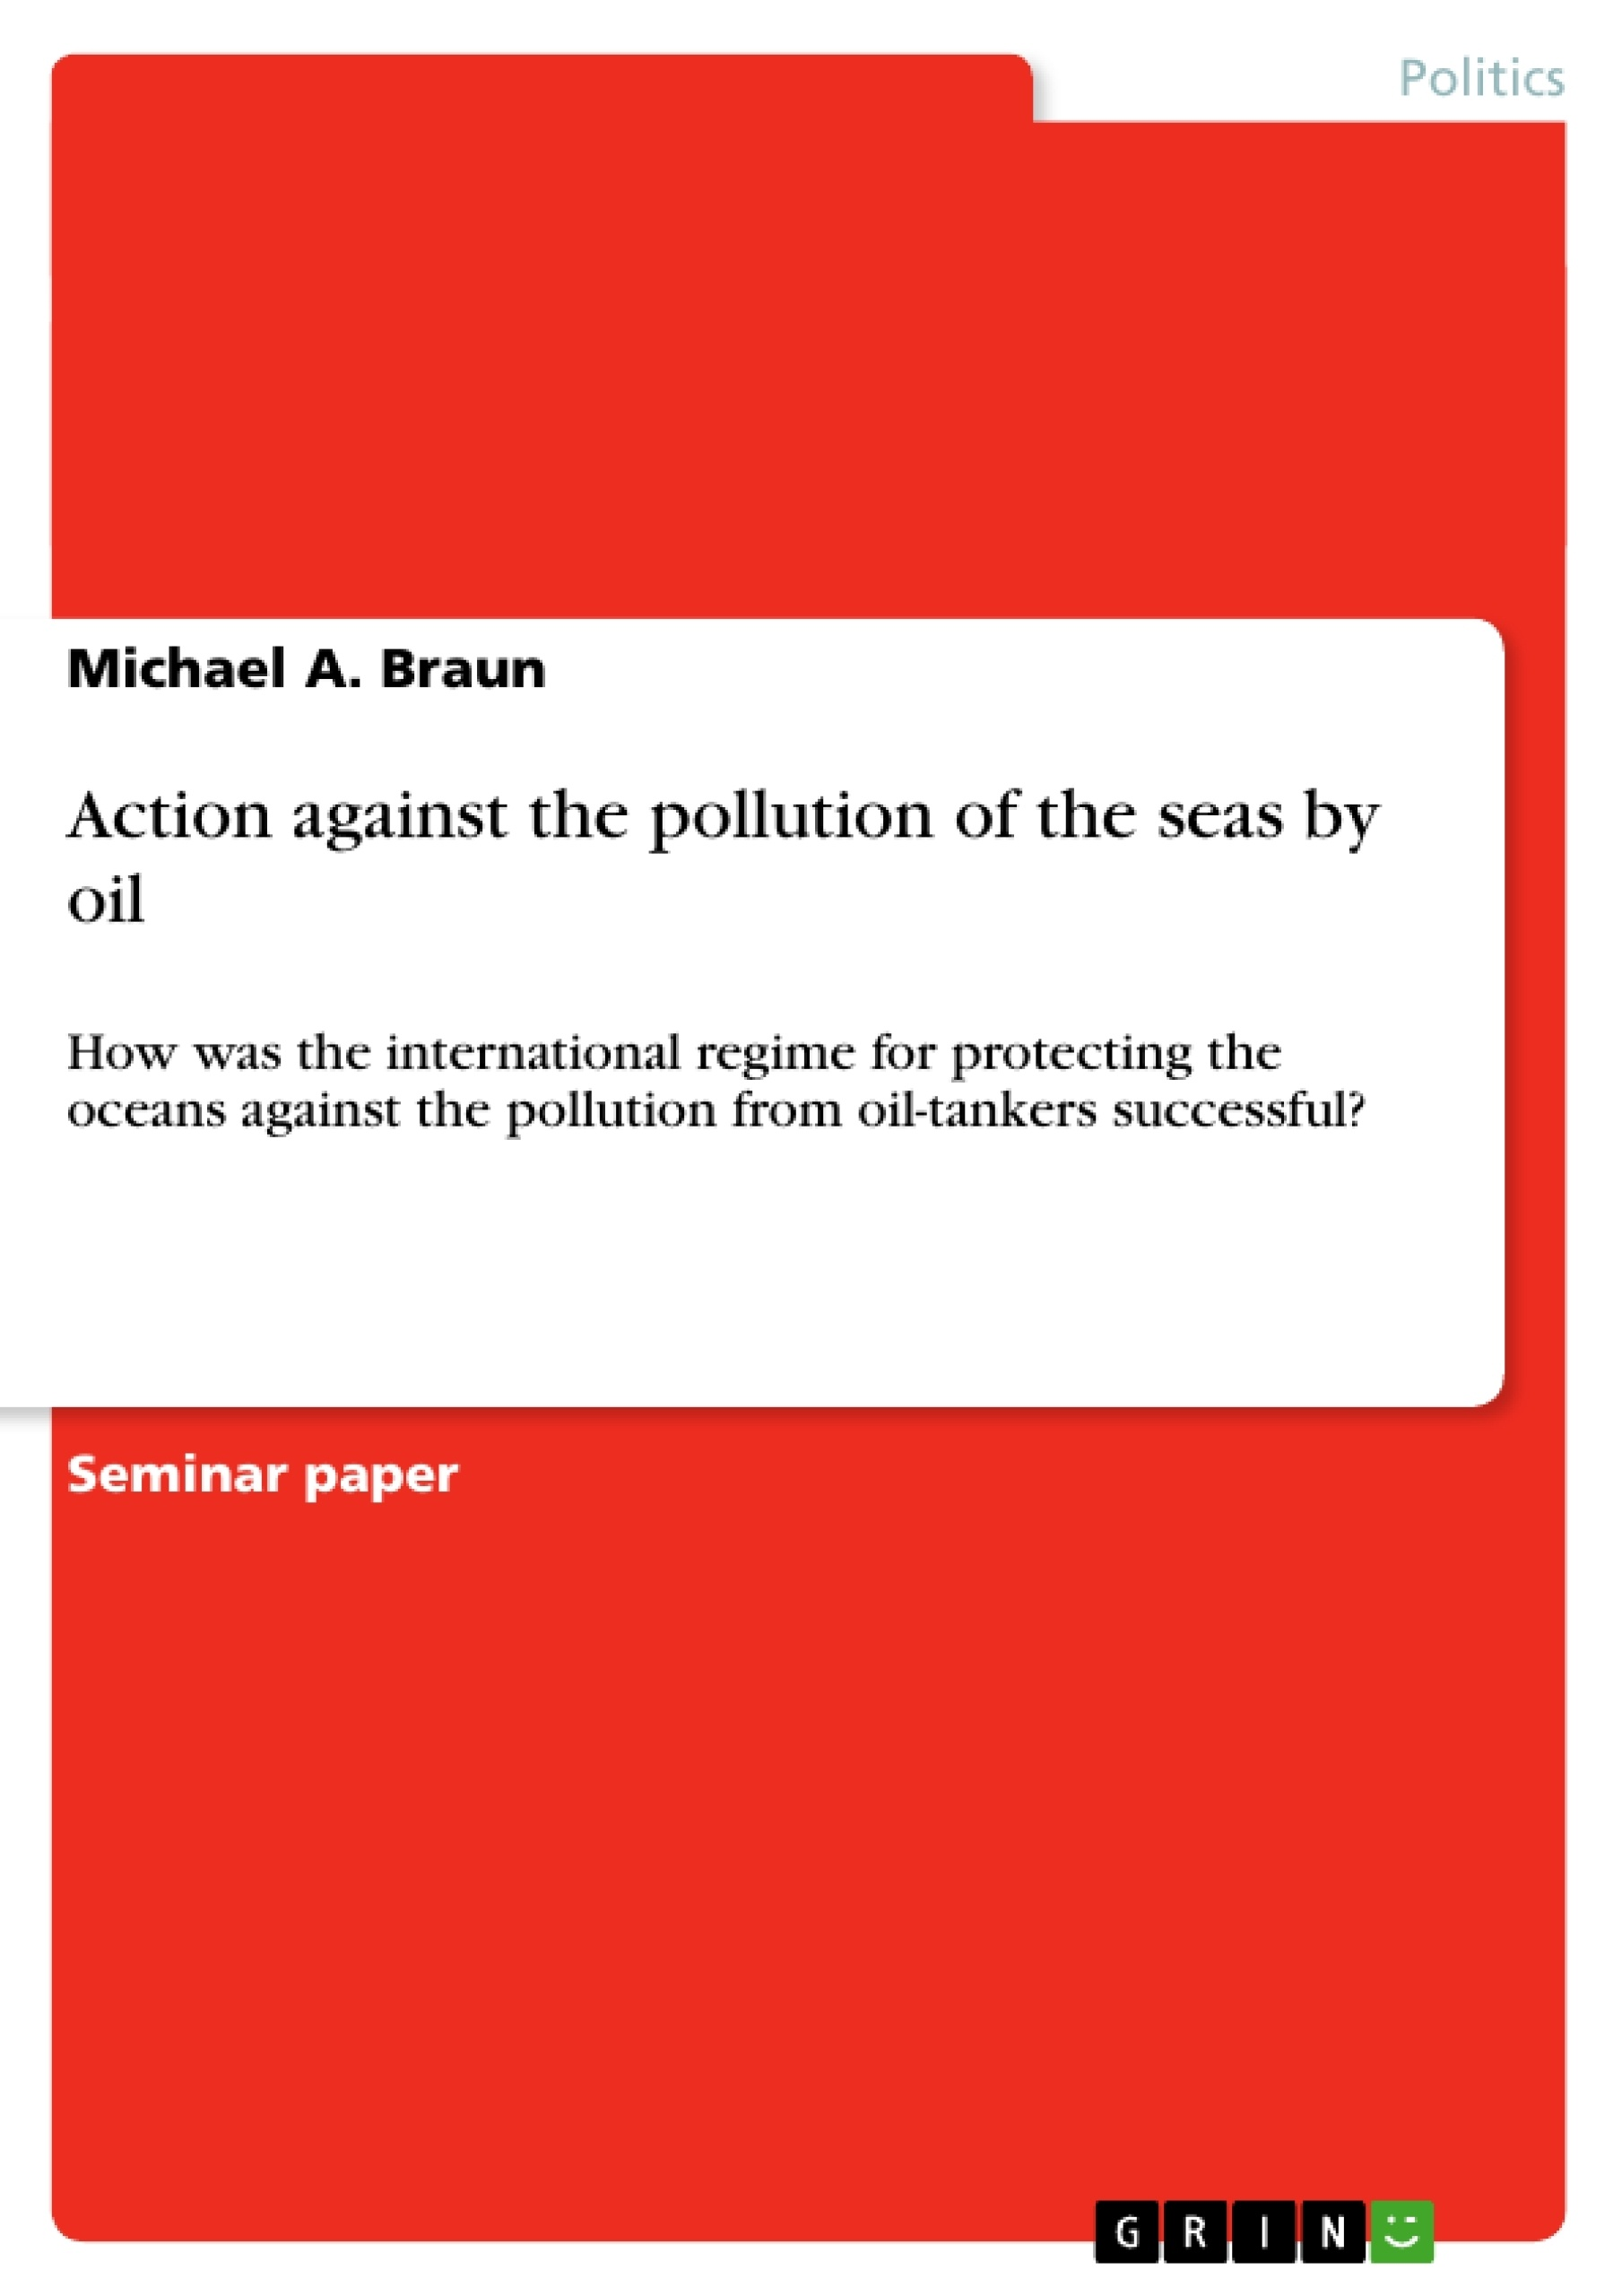 Title: Action against the pollution of the seas by oil